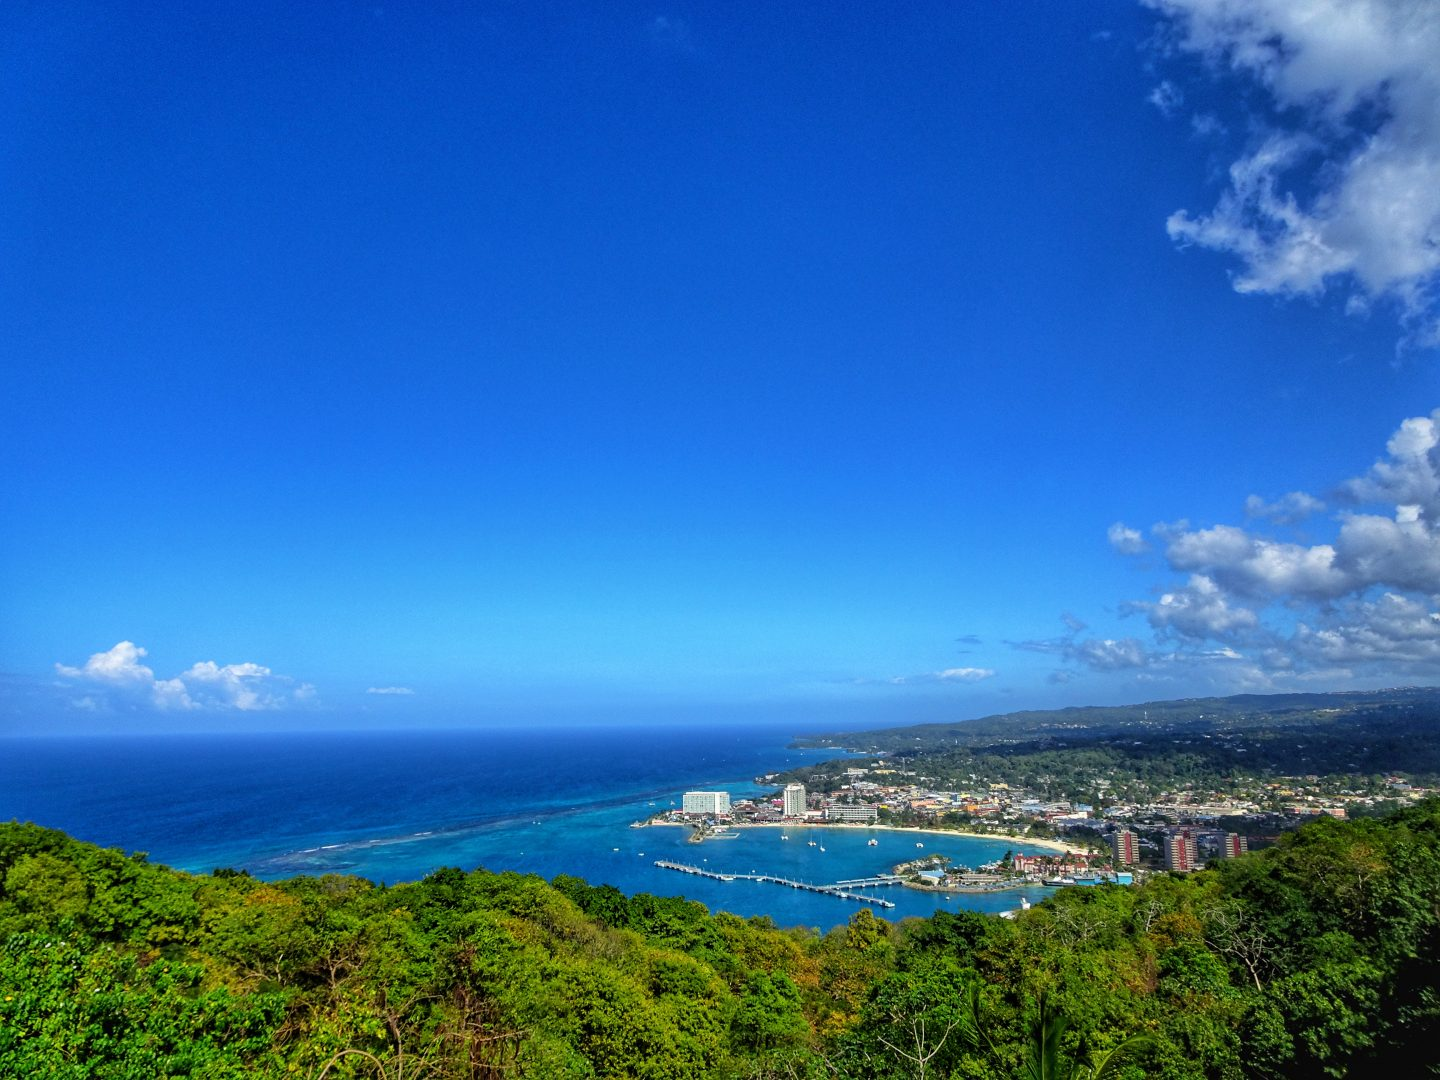 Views of Ocho Rios.